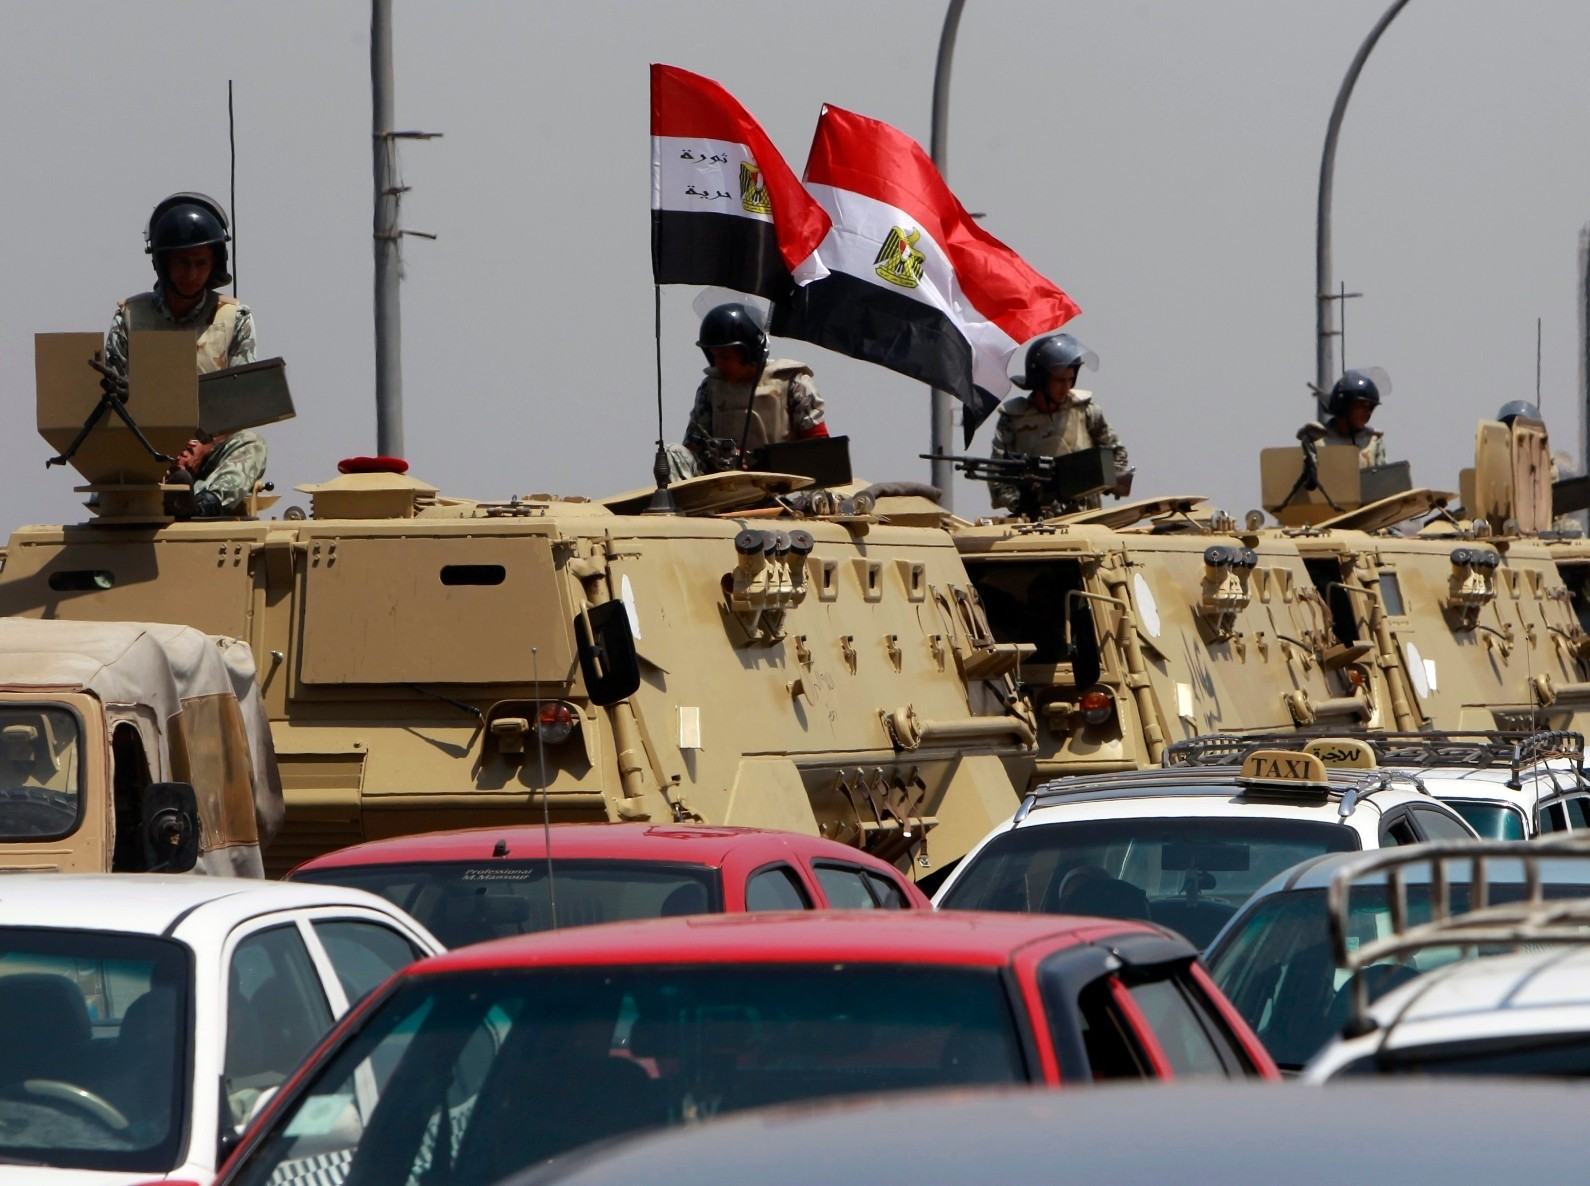 Egypt's Transition Away From American Military Equipment is a National Security Concern